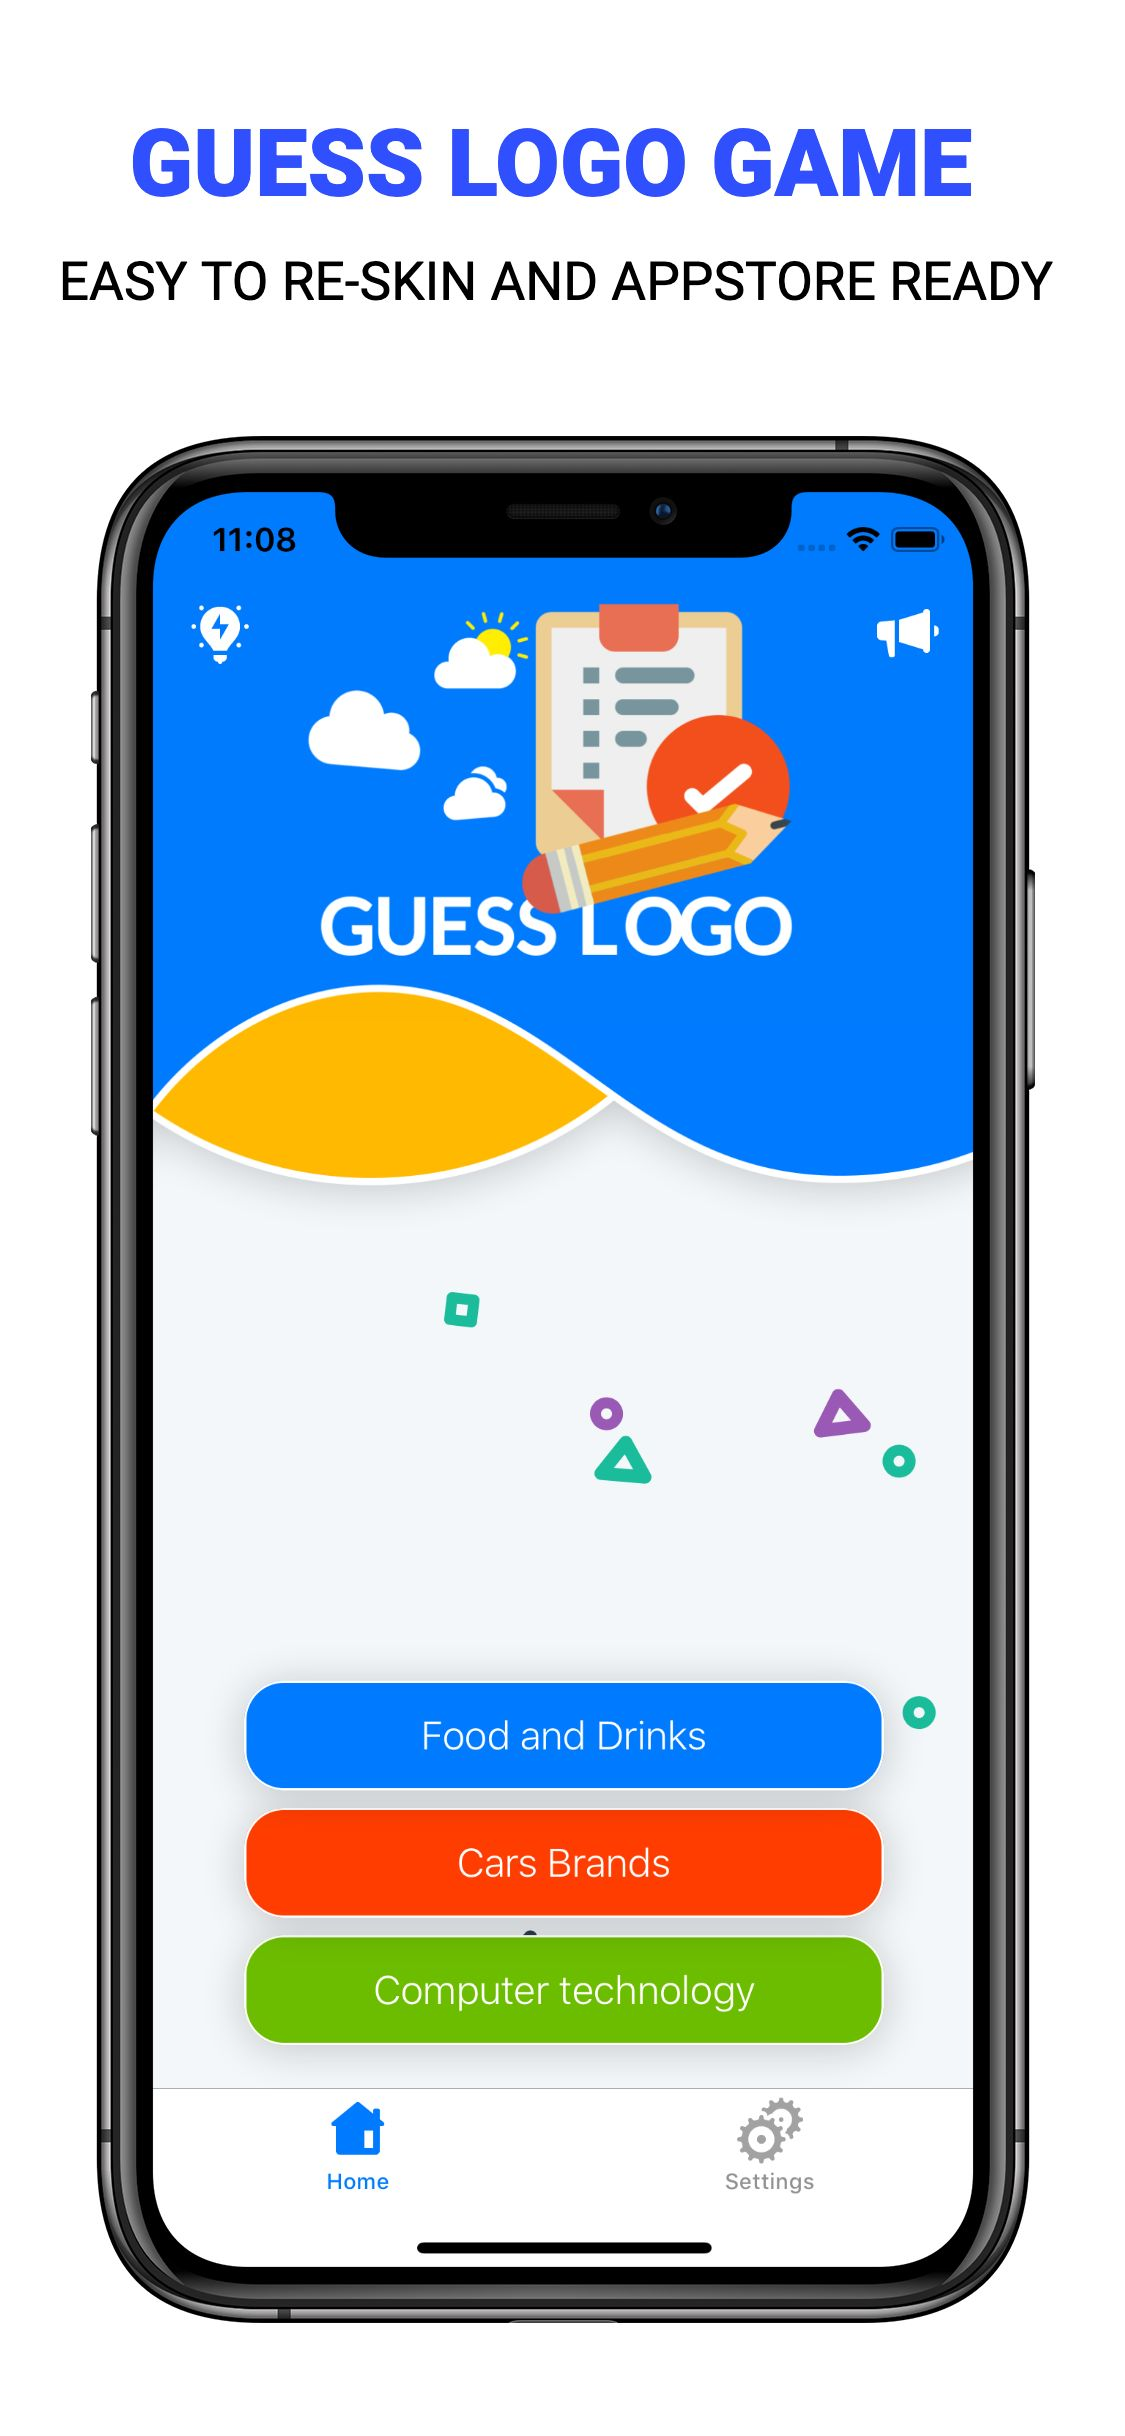 Guess Logo - iOS Game Source Code Screenshot 2